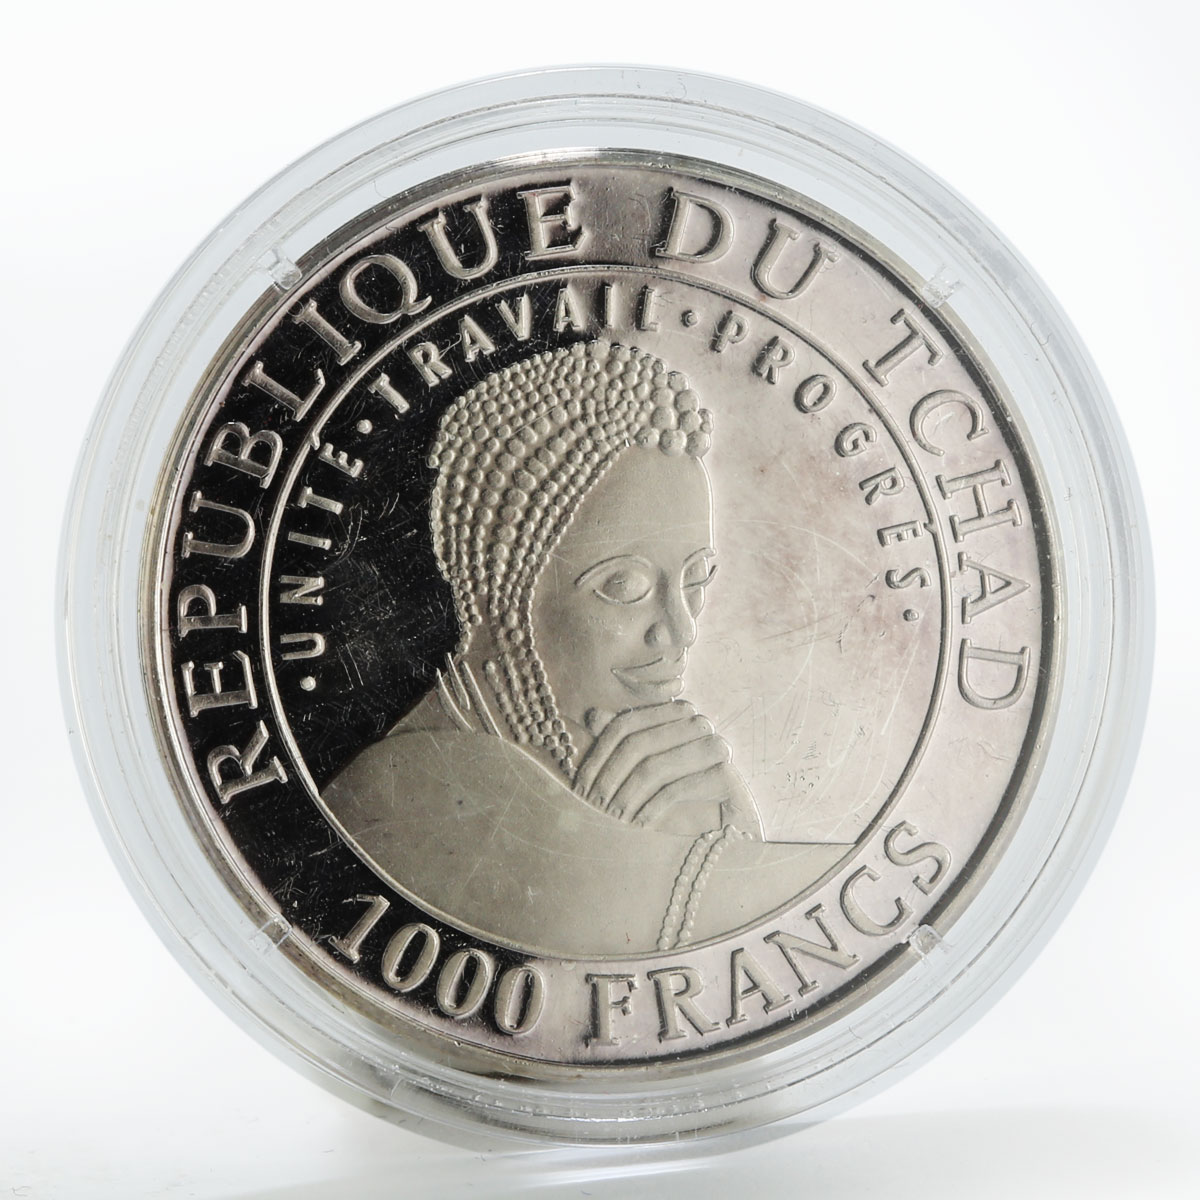 Chad 1000 francs Fortten Cultures - Jericho proof silver coin 1999